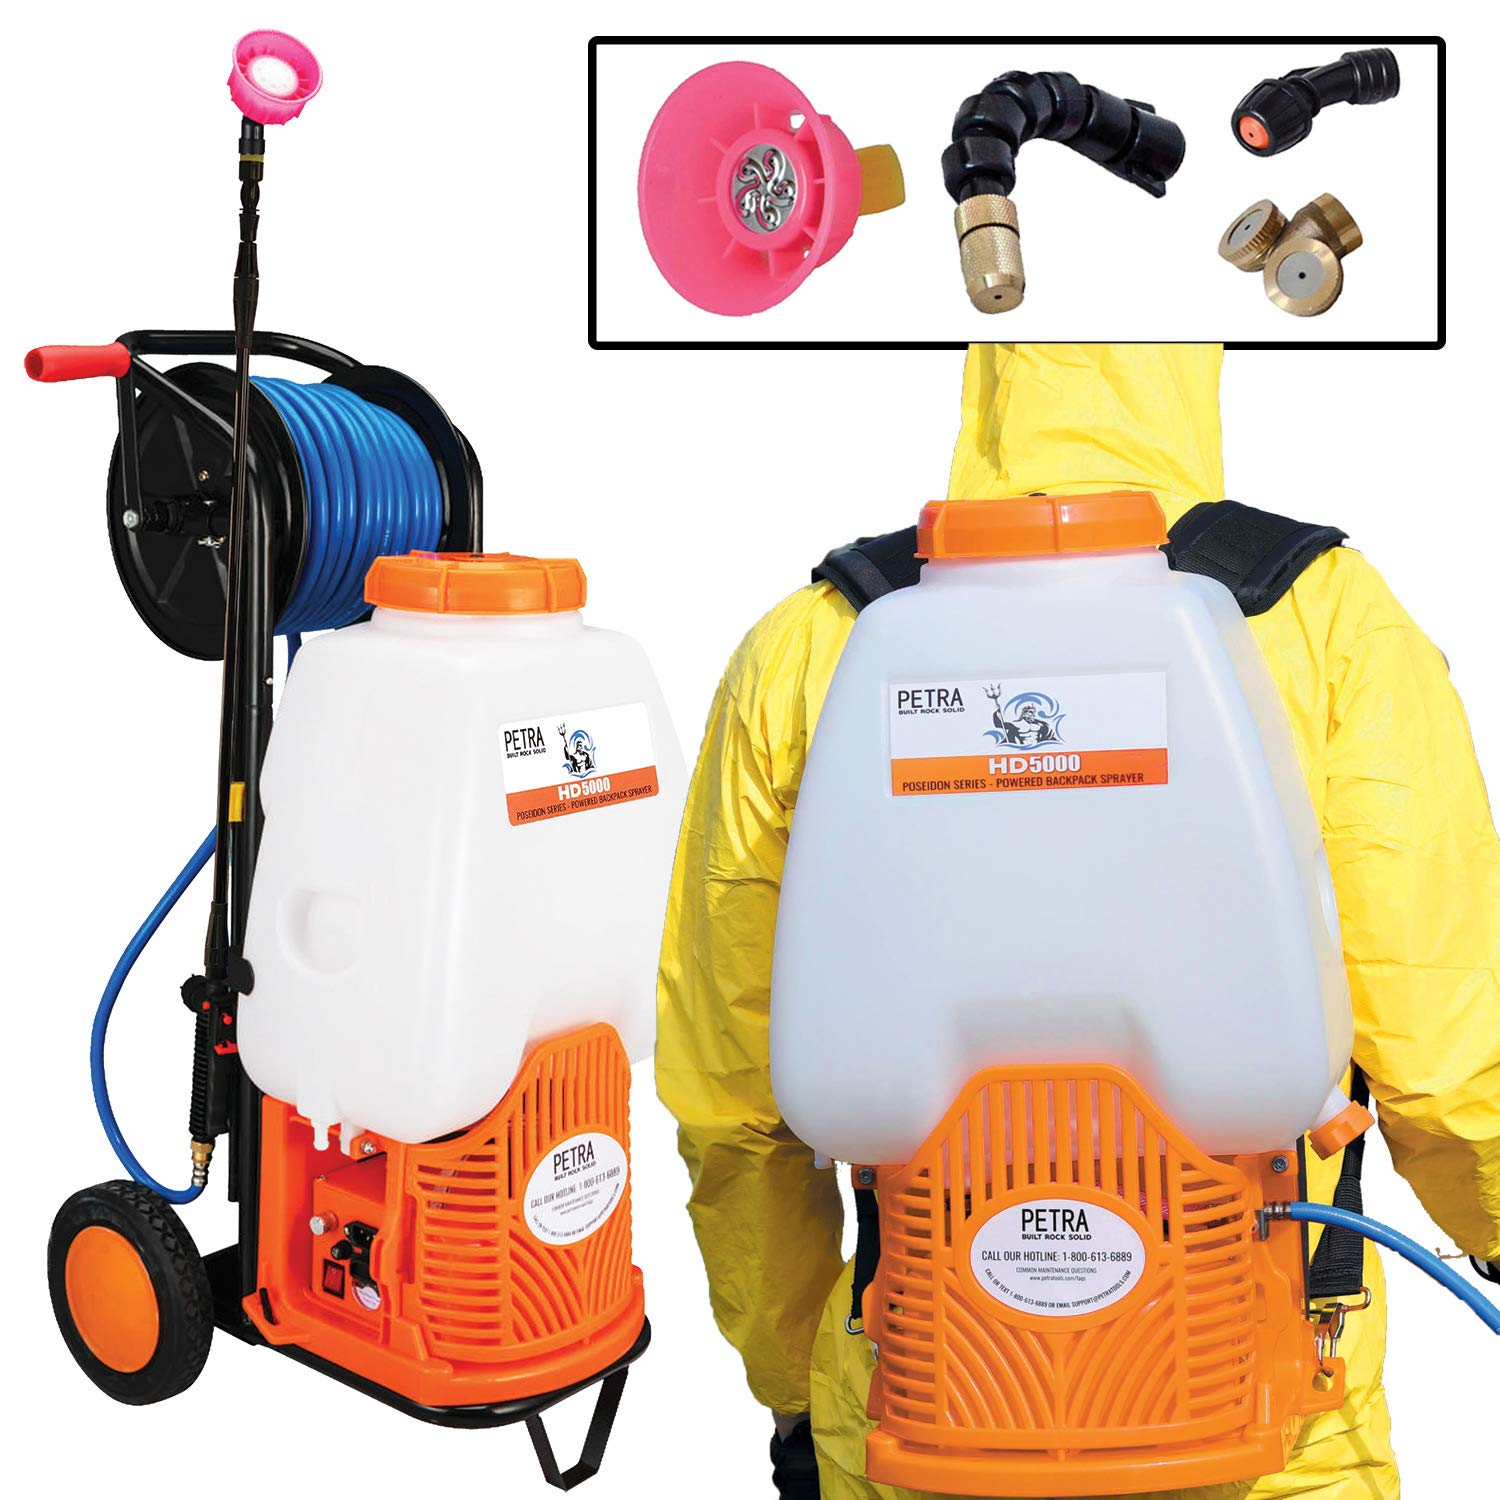 Petra Battery Backpack Sprayer with Custom Fitted Cart and 100 Foot Commercial Hose, 2 Hoses Included, Commercial Quality Heavy Duty Sprayer (HD5000 6.5-Gallon with Reel Cart)